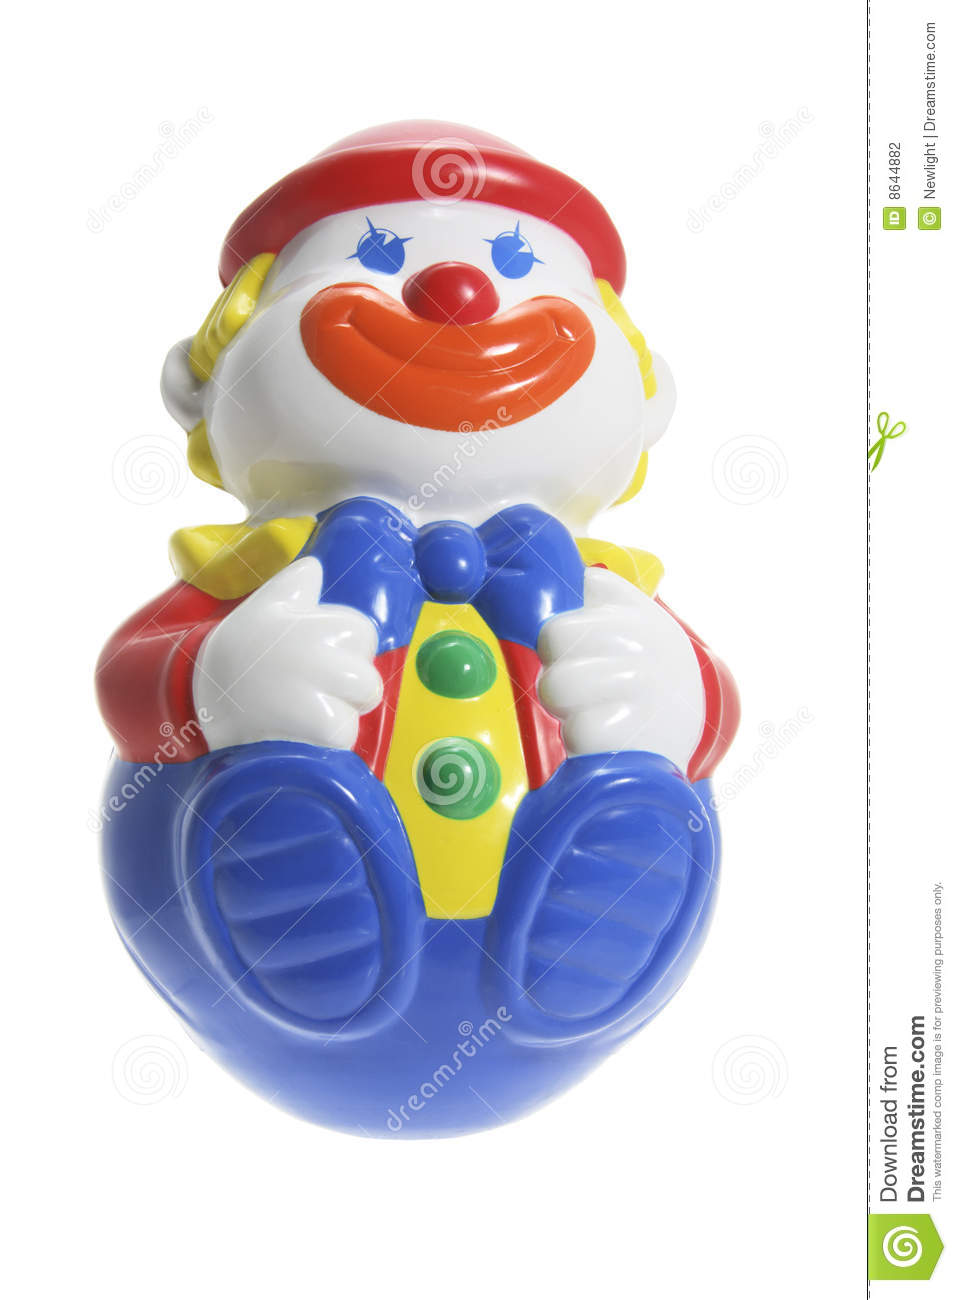 Roly poly toy clown stock photography image 8644882